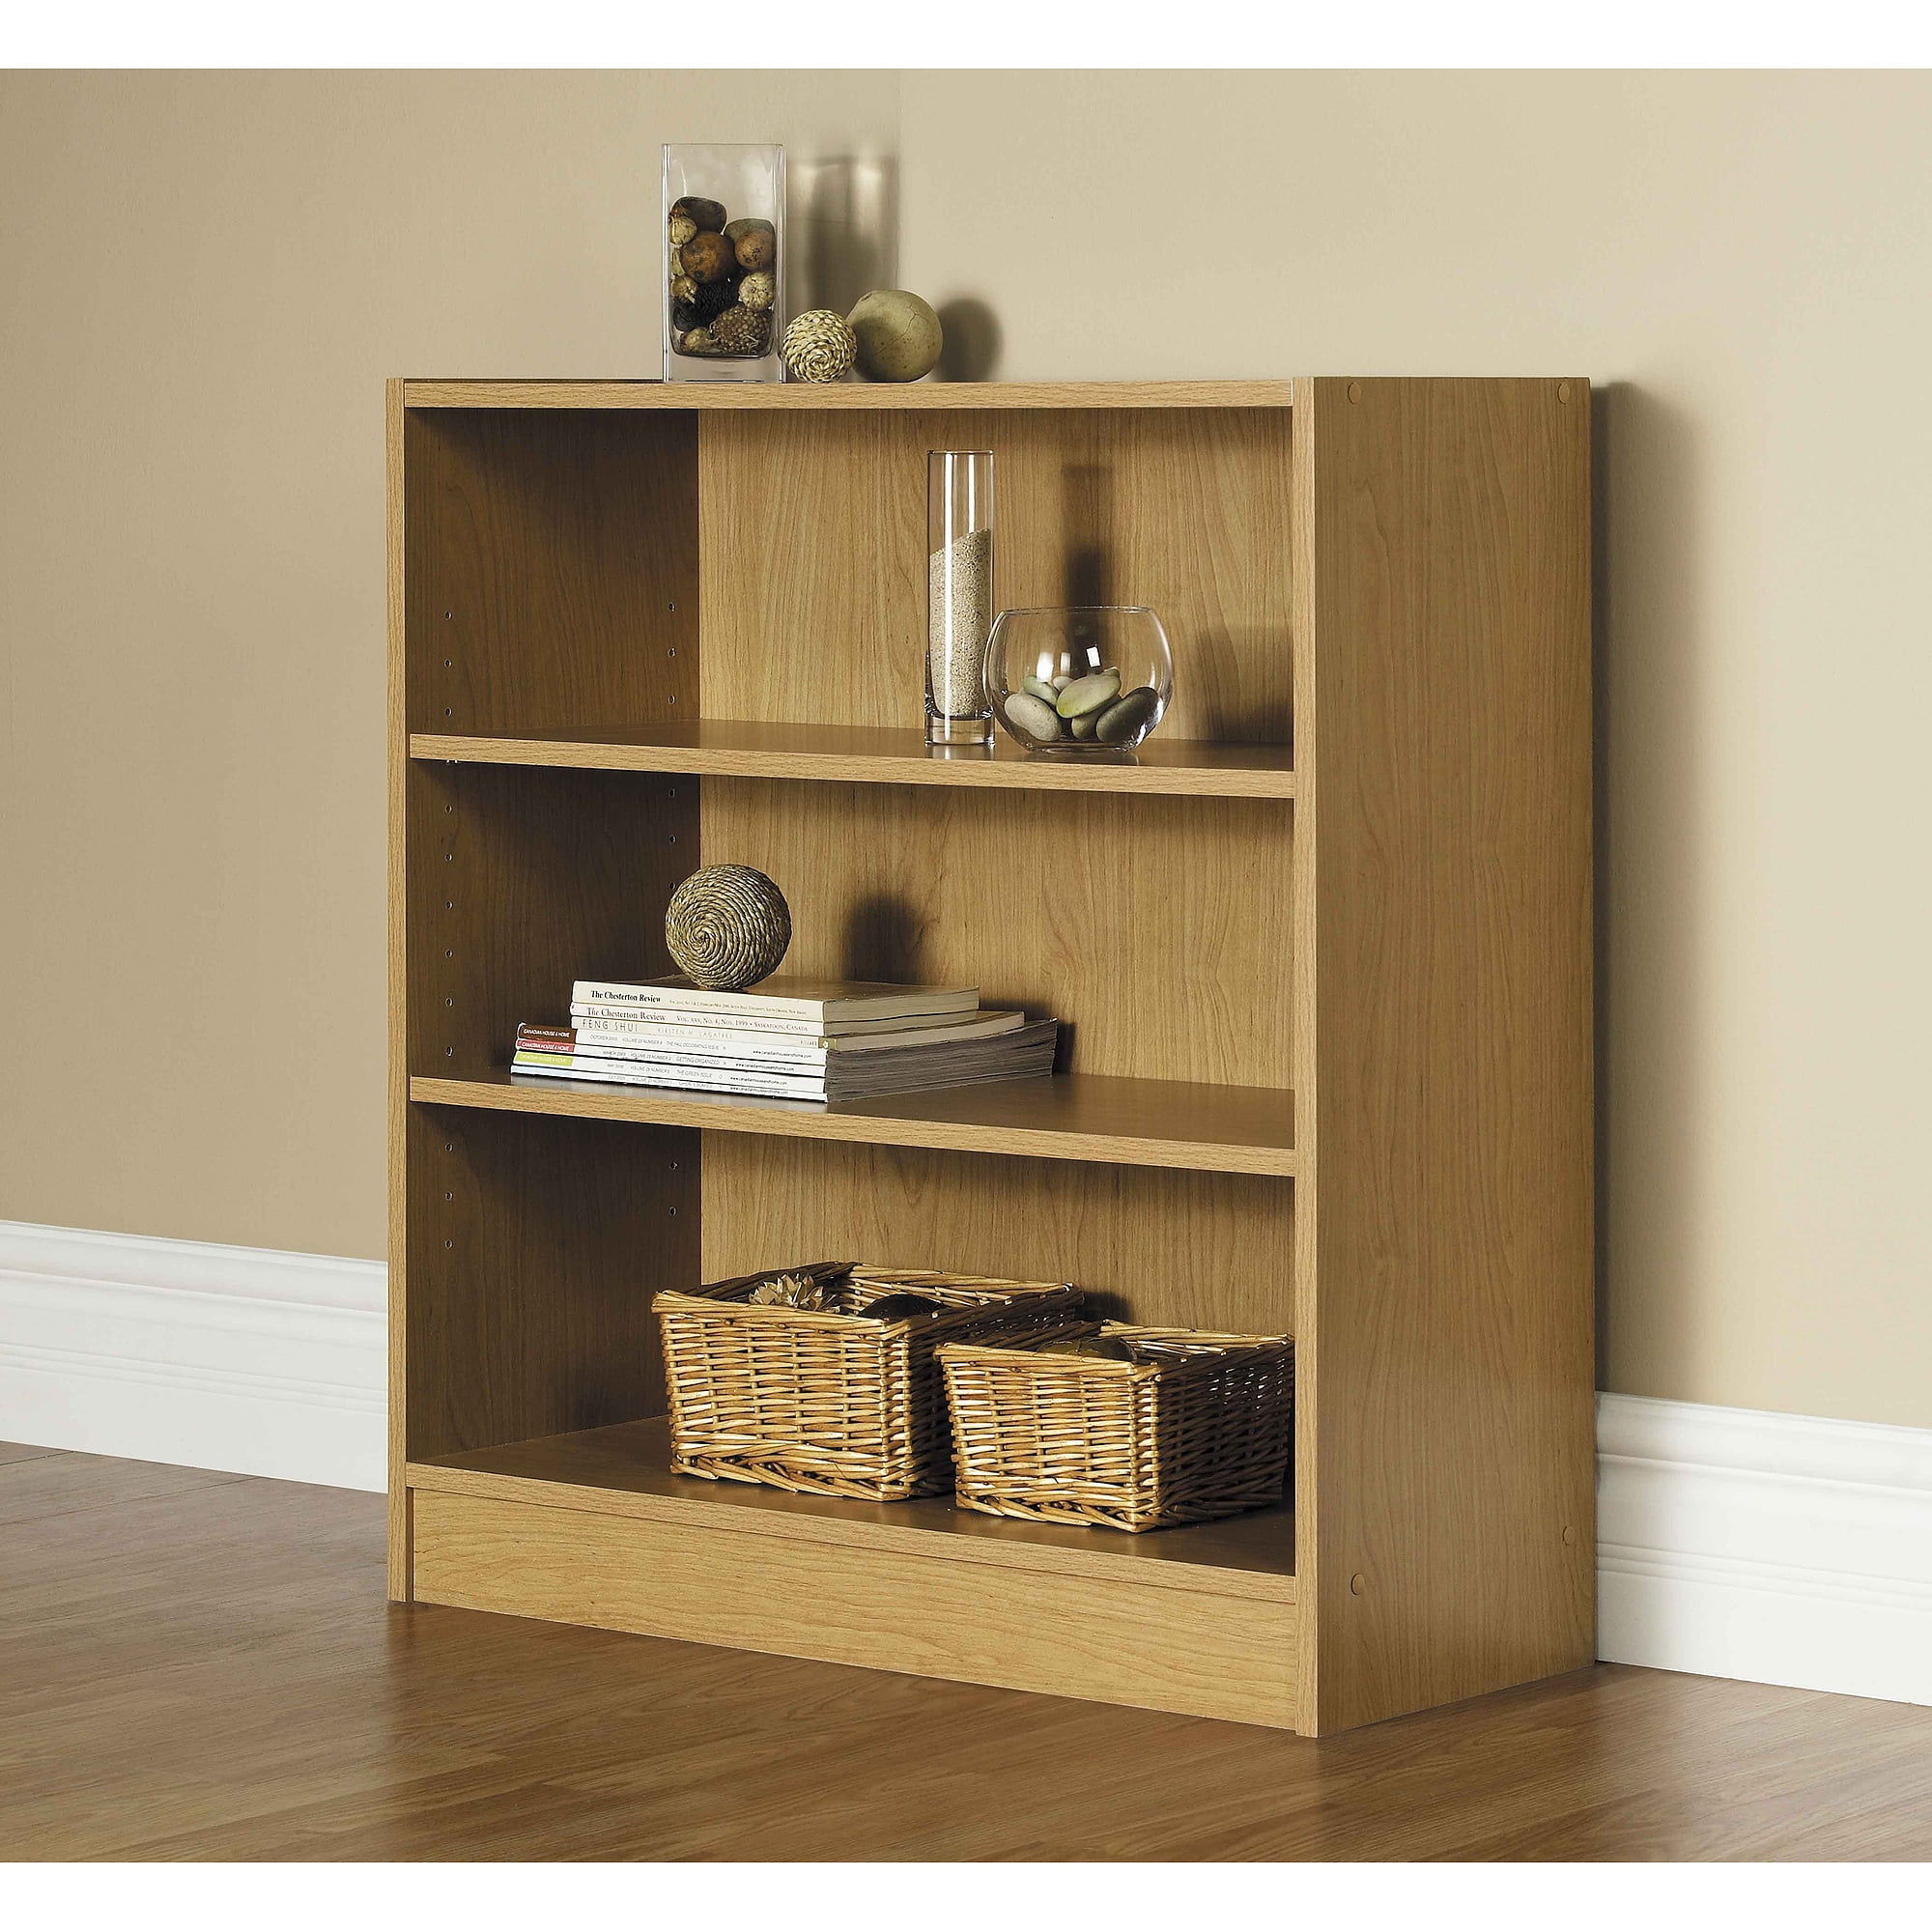 finishes wide kp c multiple long standard orion shelf bookcase bookcases